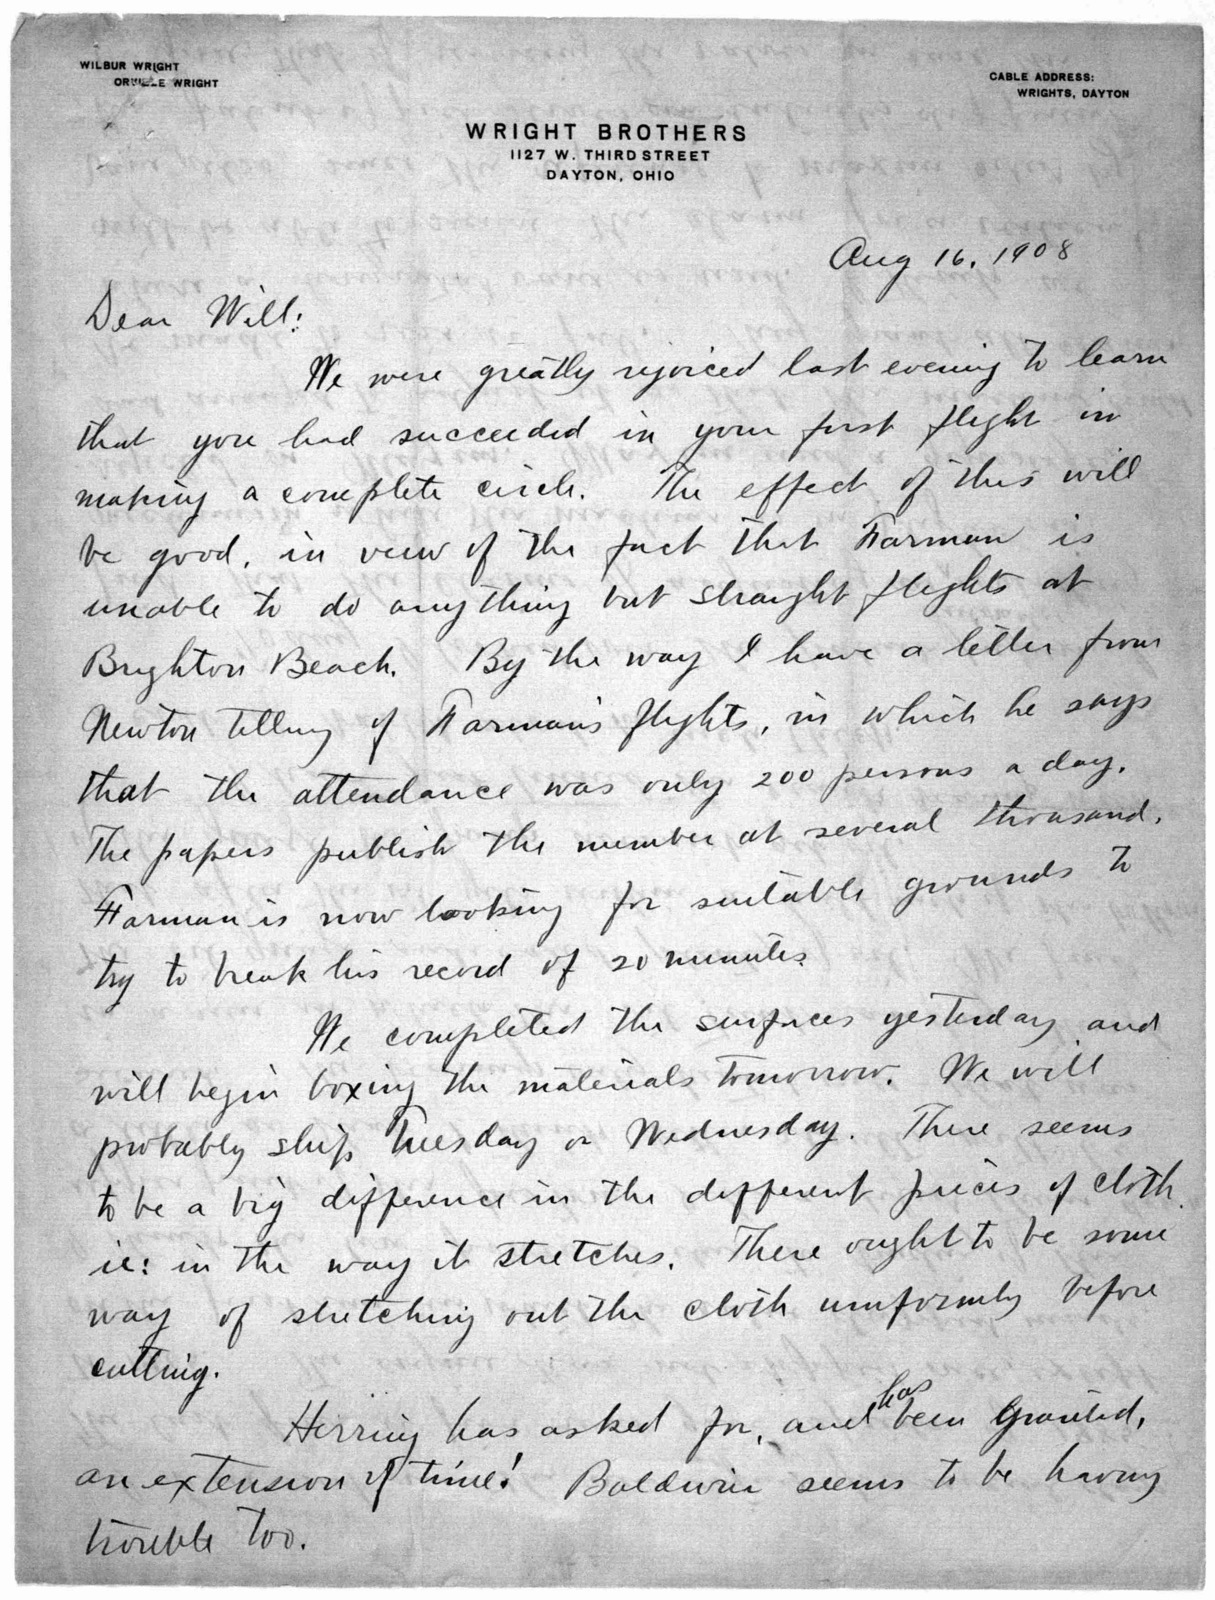 Family Papers:  Correspondence--Wright, Orville, July-August 1908